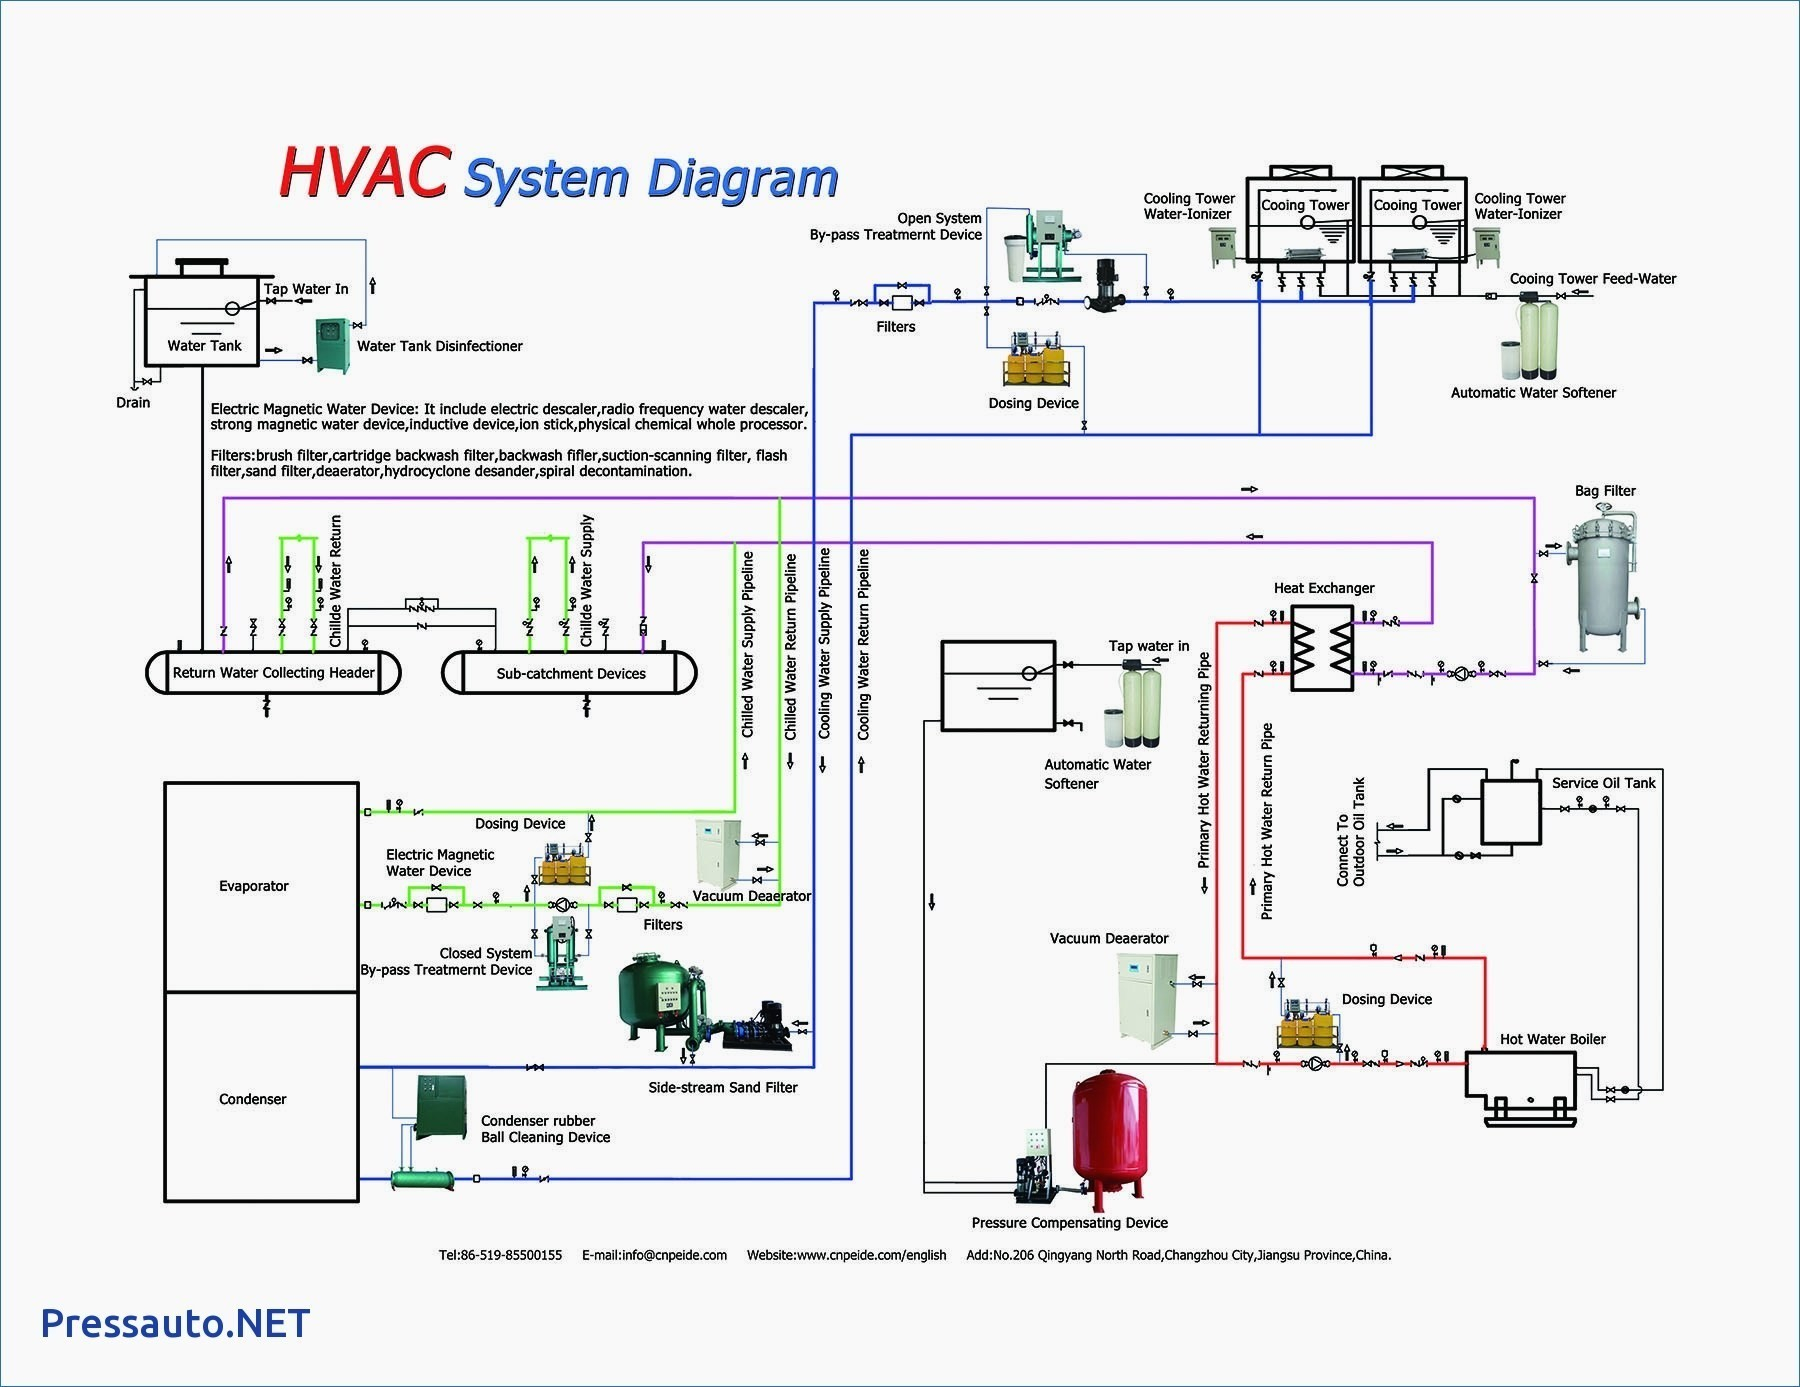 fasco motors wiring diagram Download-Hvac Fan Wiring Diagram New Wiring Diagram for Fasco Blower Motor Best Hvac Blower Motor Wiring 10-l